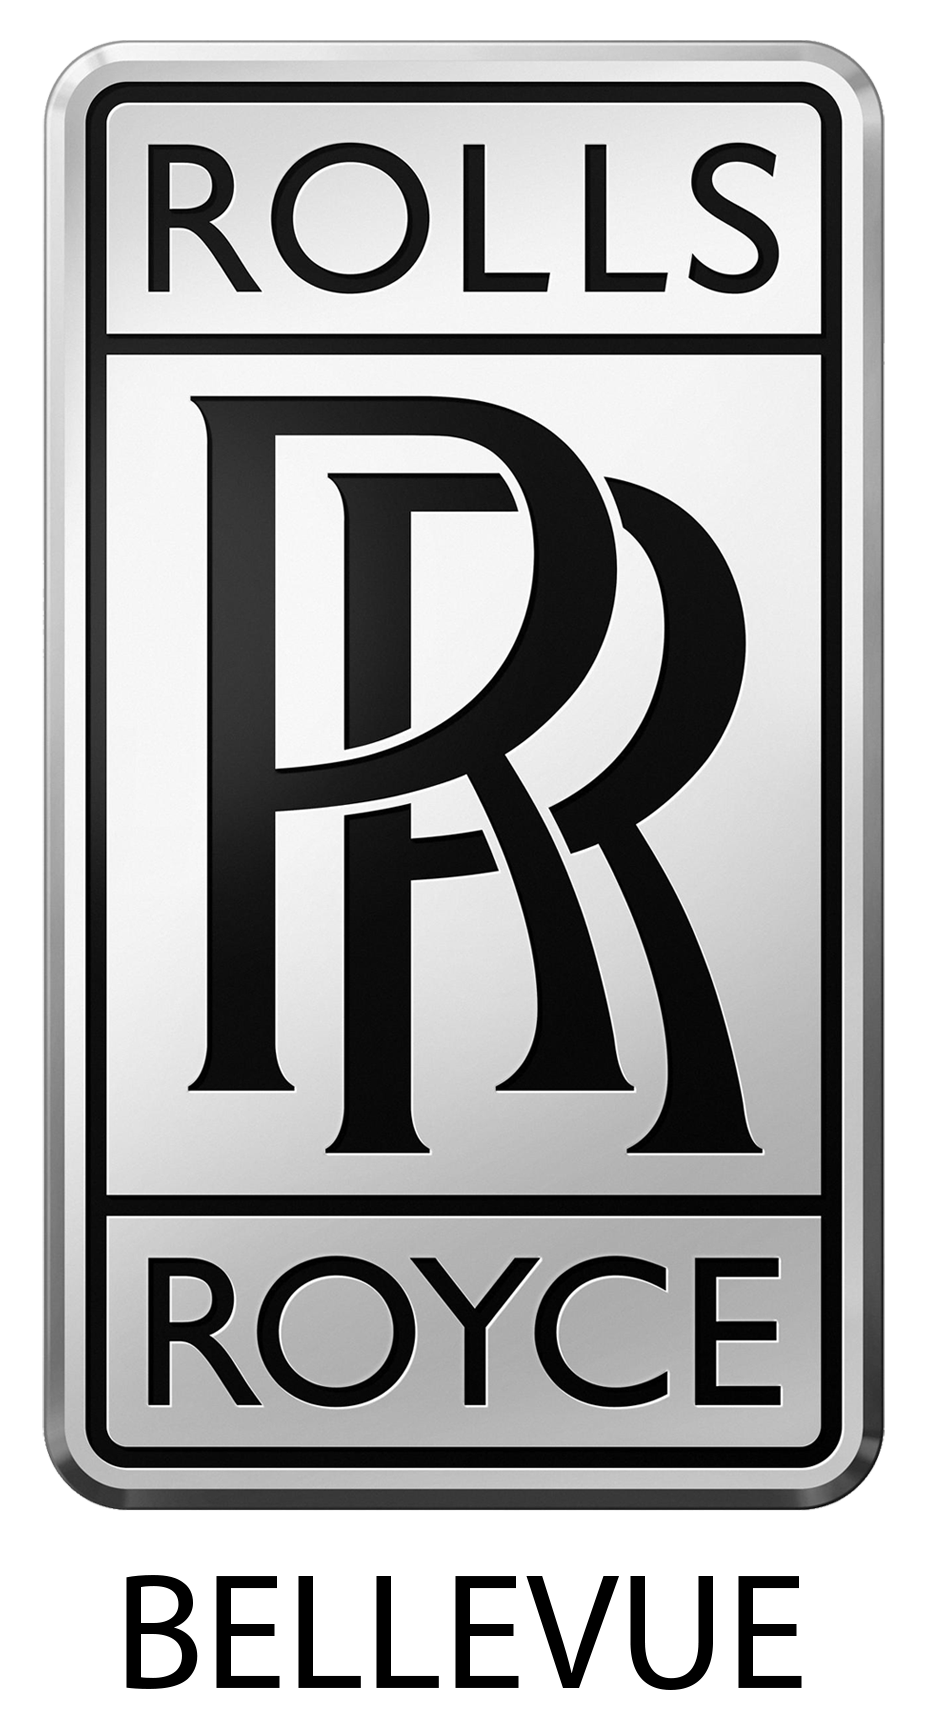 ROLLS ROYCE BELLEVUE_LOGO 02 shaded.png